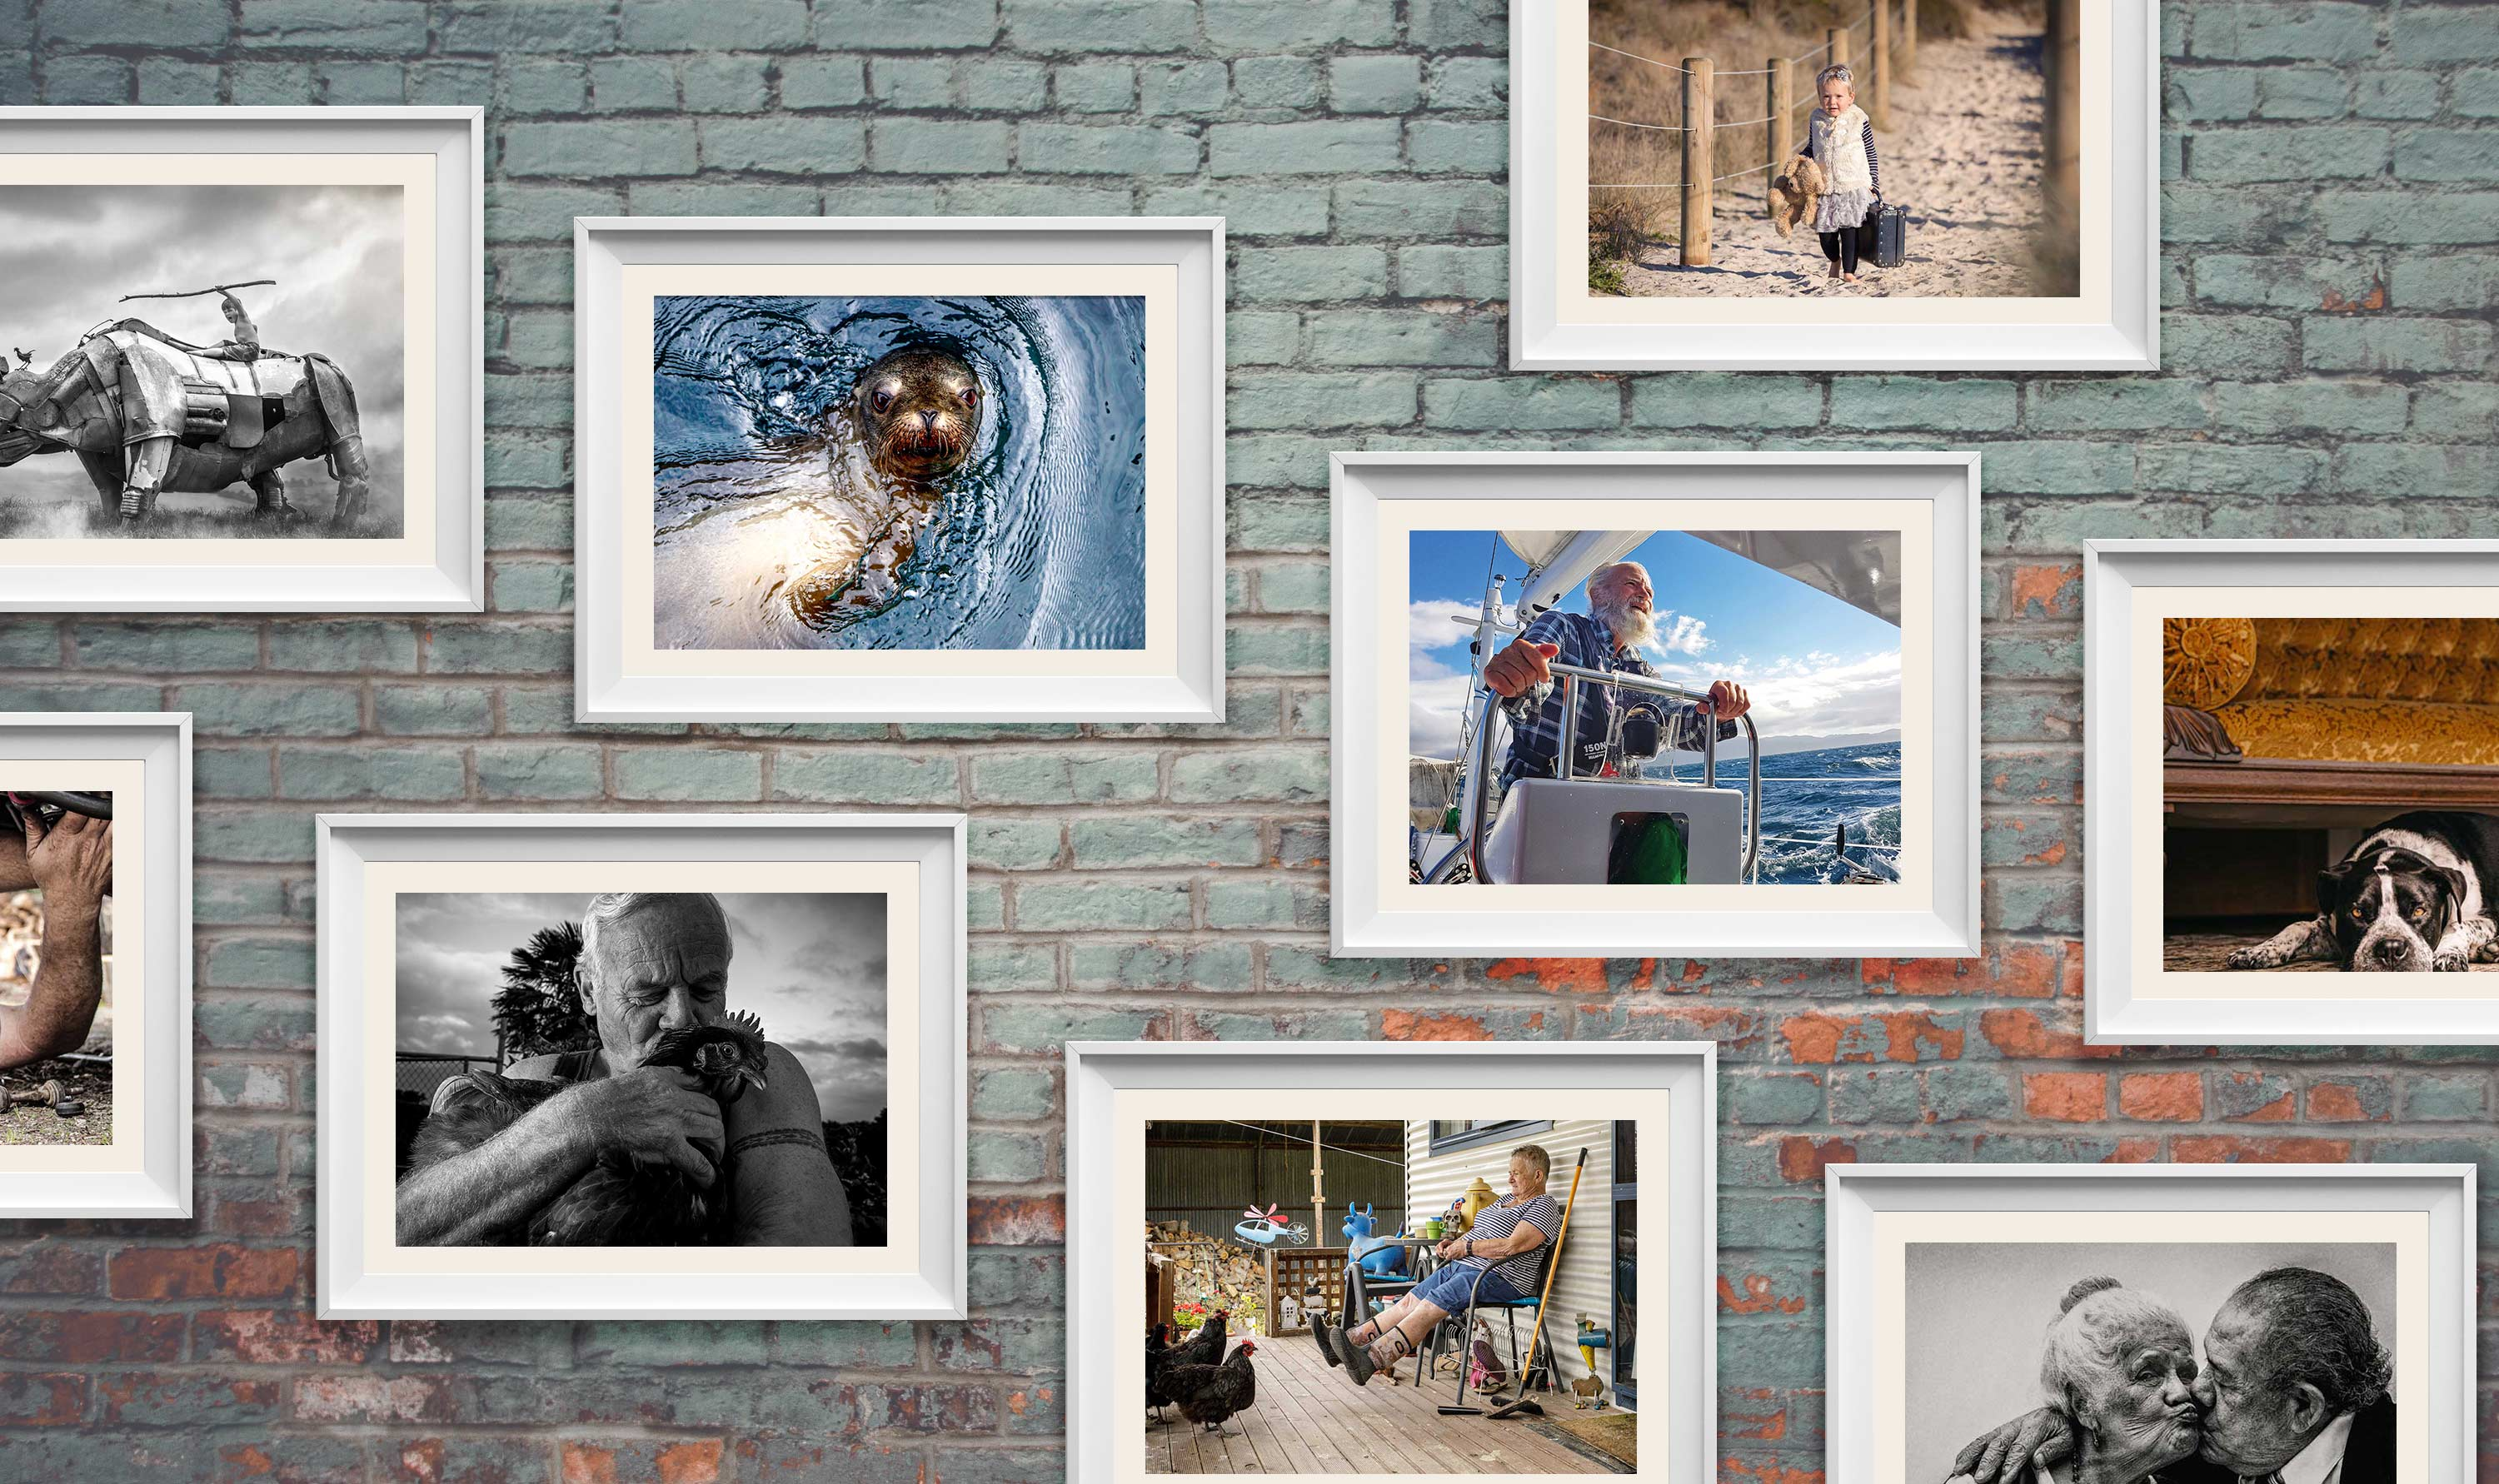 A gallery of the top 20 photos taken for the trust power photographic exhibition